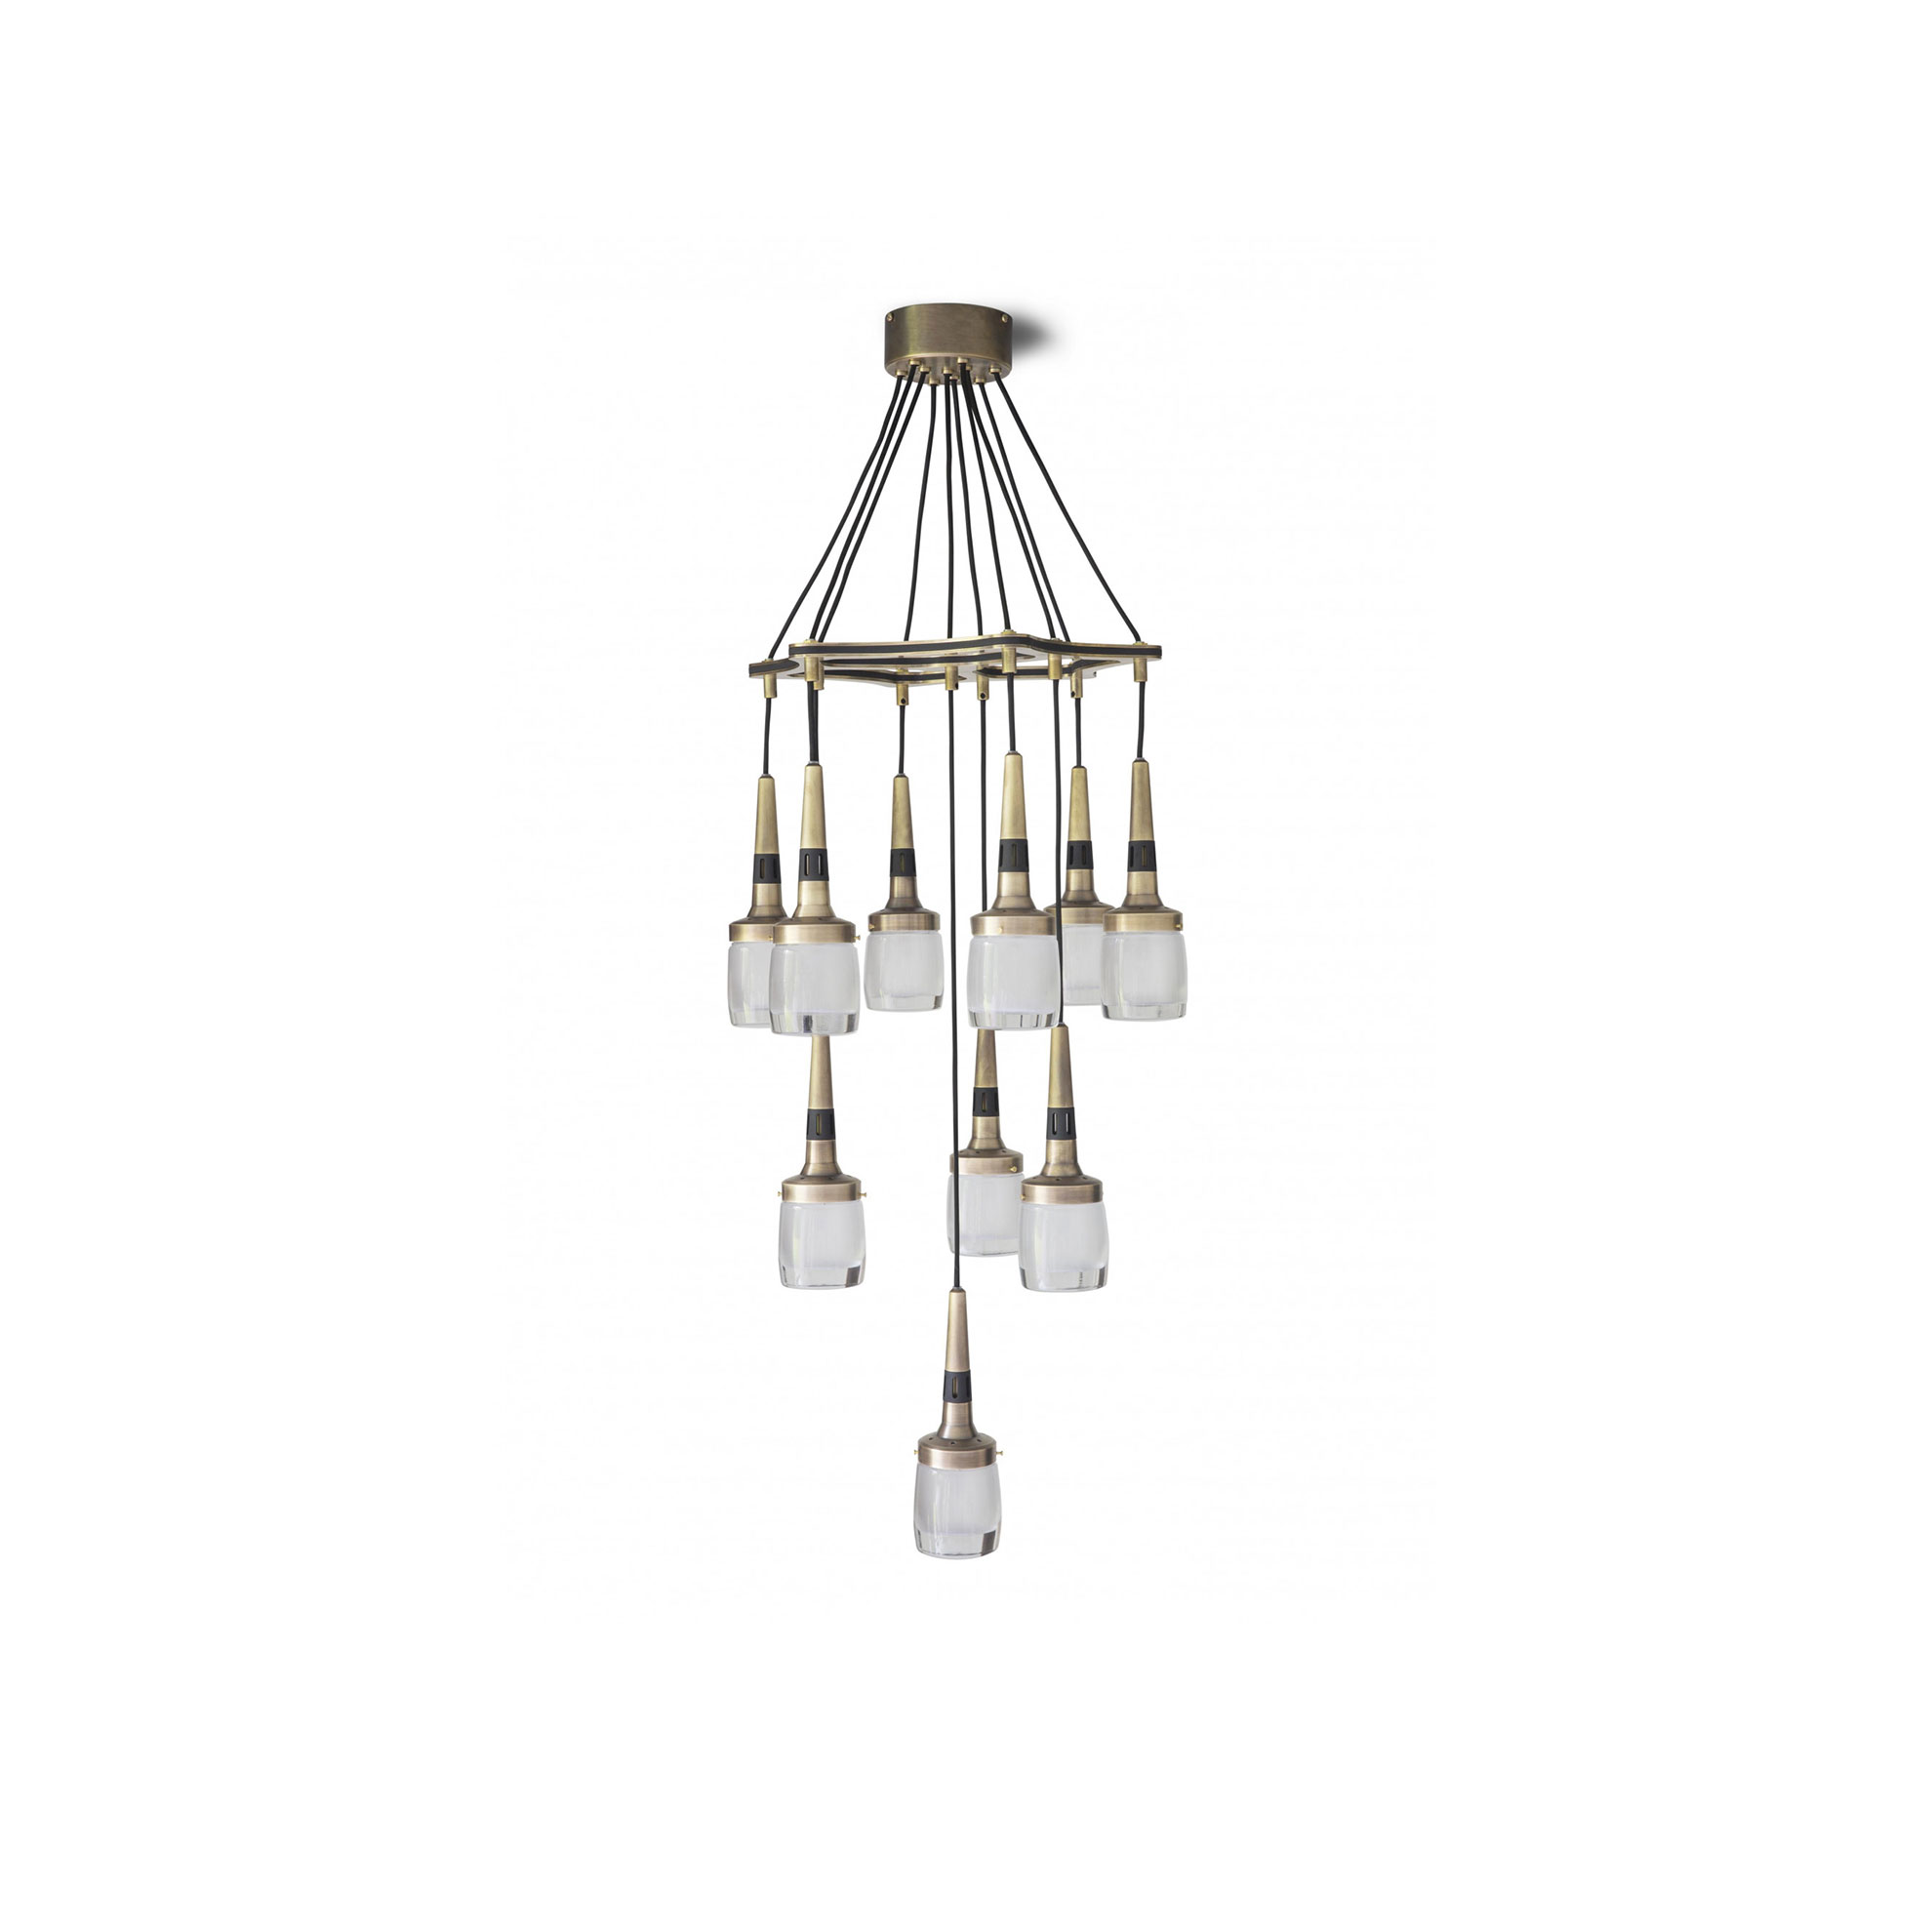 Flagon Chandelier - With hand-finished brass, contrasting black highlights and thick 'whisky glass' shades, the Flagon Chandelier makes an arresting statement. Ten drop shades will dramatically illuminate a dining table, hallway or stairwell.    | Matter of Stuff